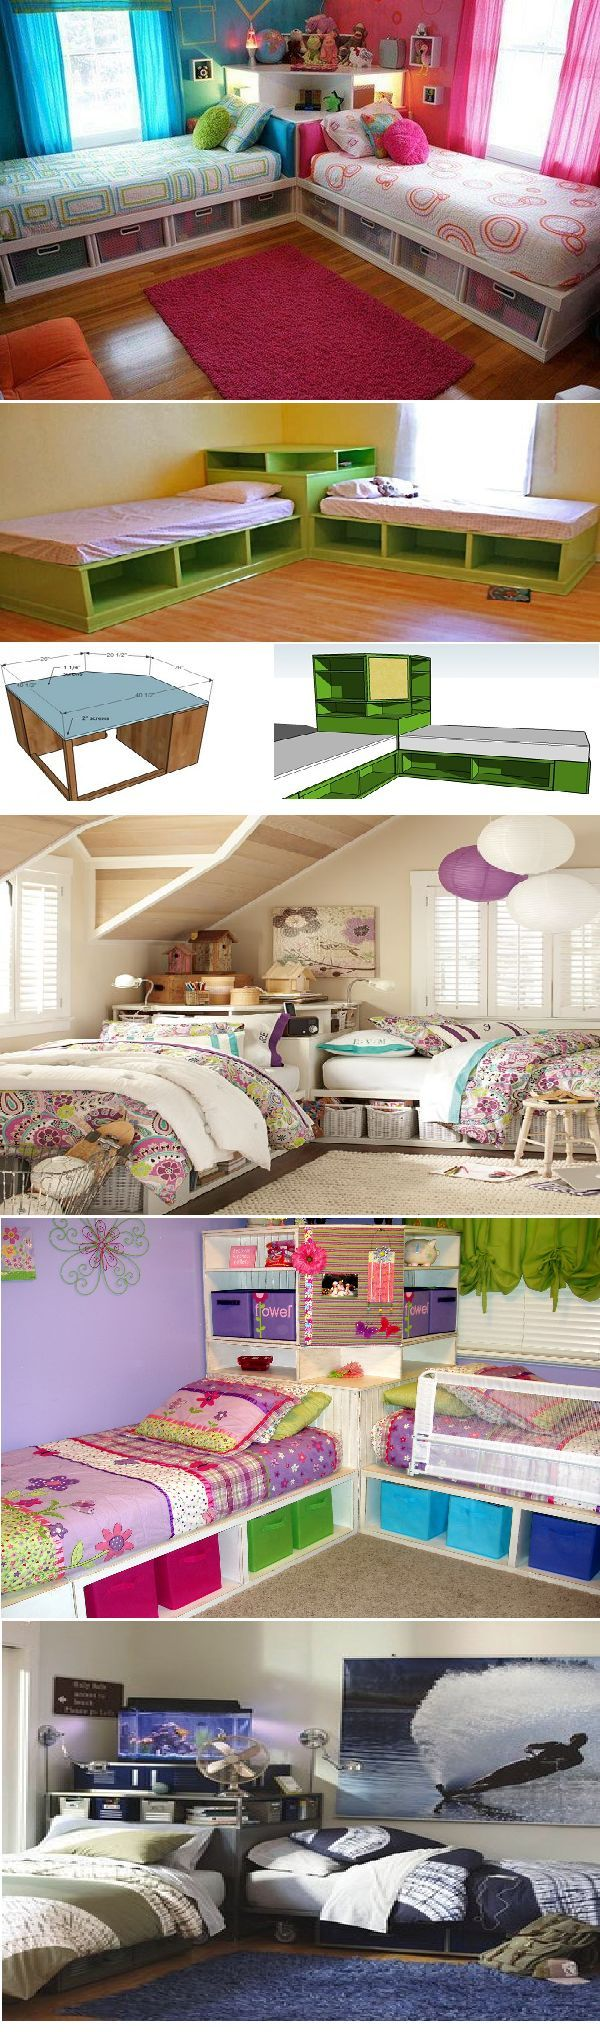 DIY Twin Corner Beds With Storage - Interior Style